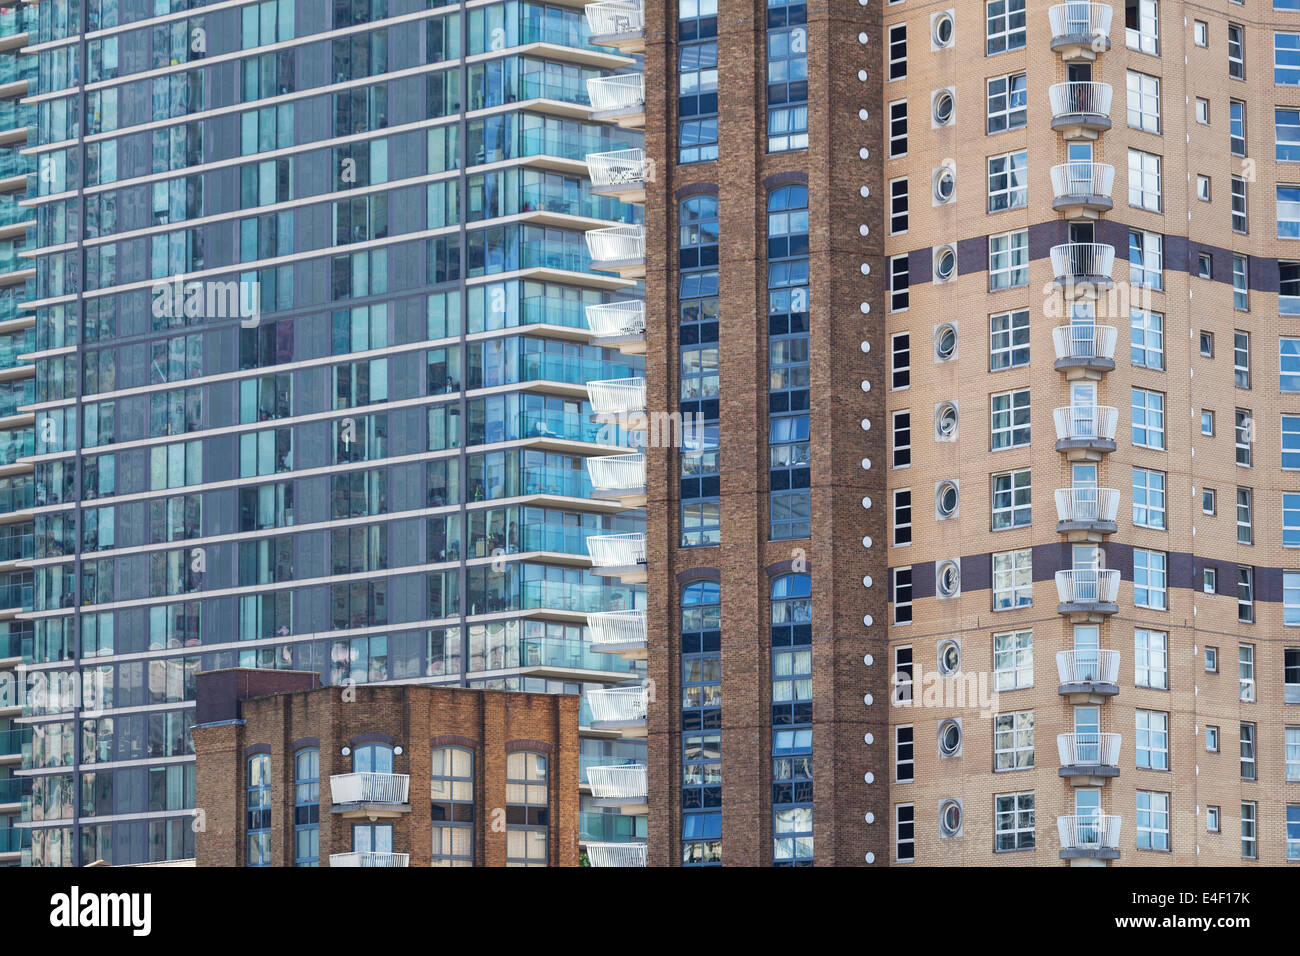 Facade Of Modern Apartment Buildings In London, England